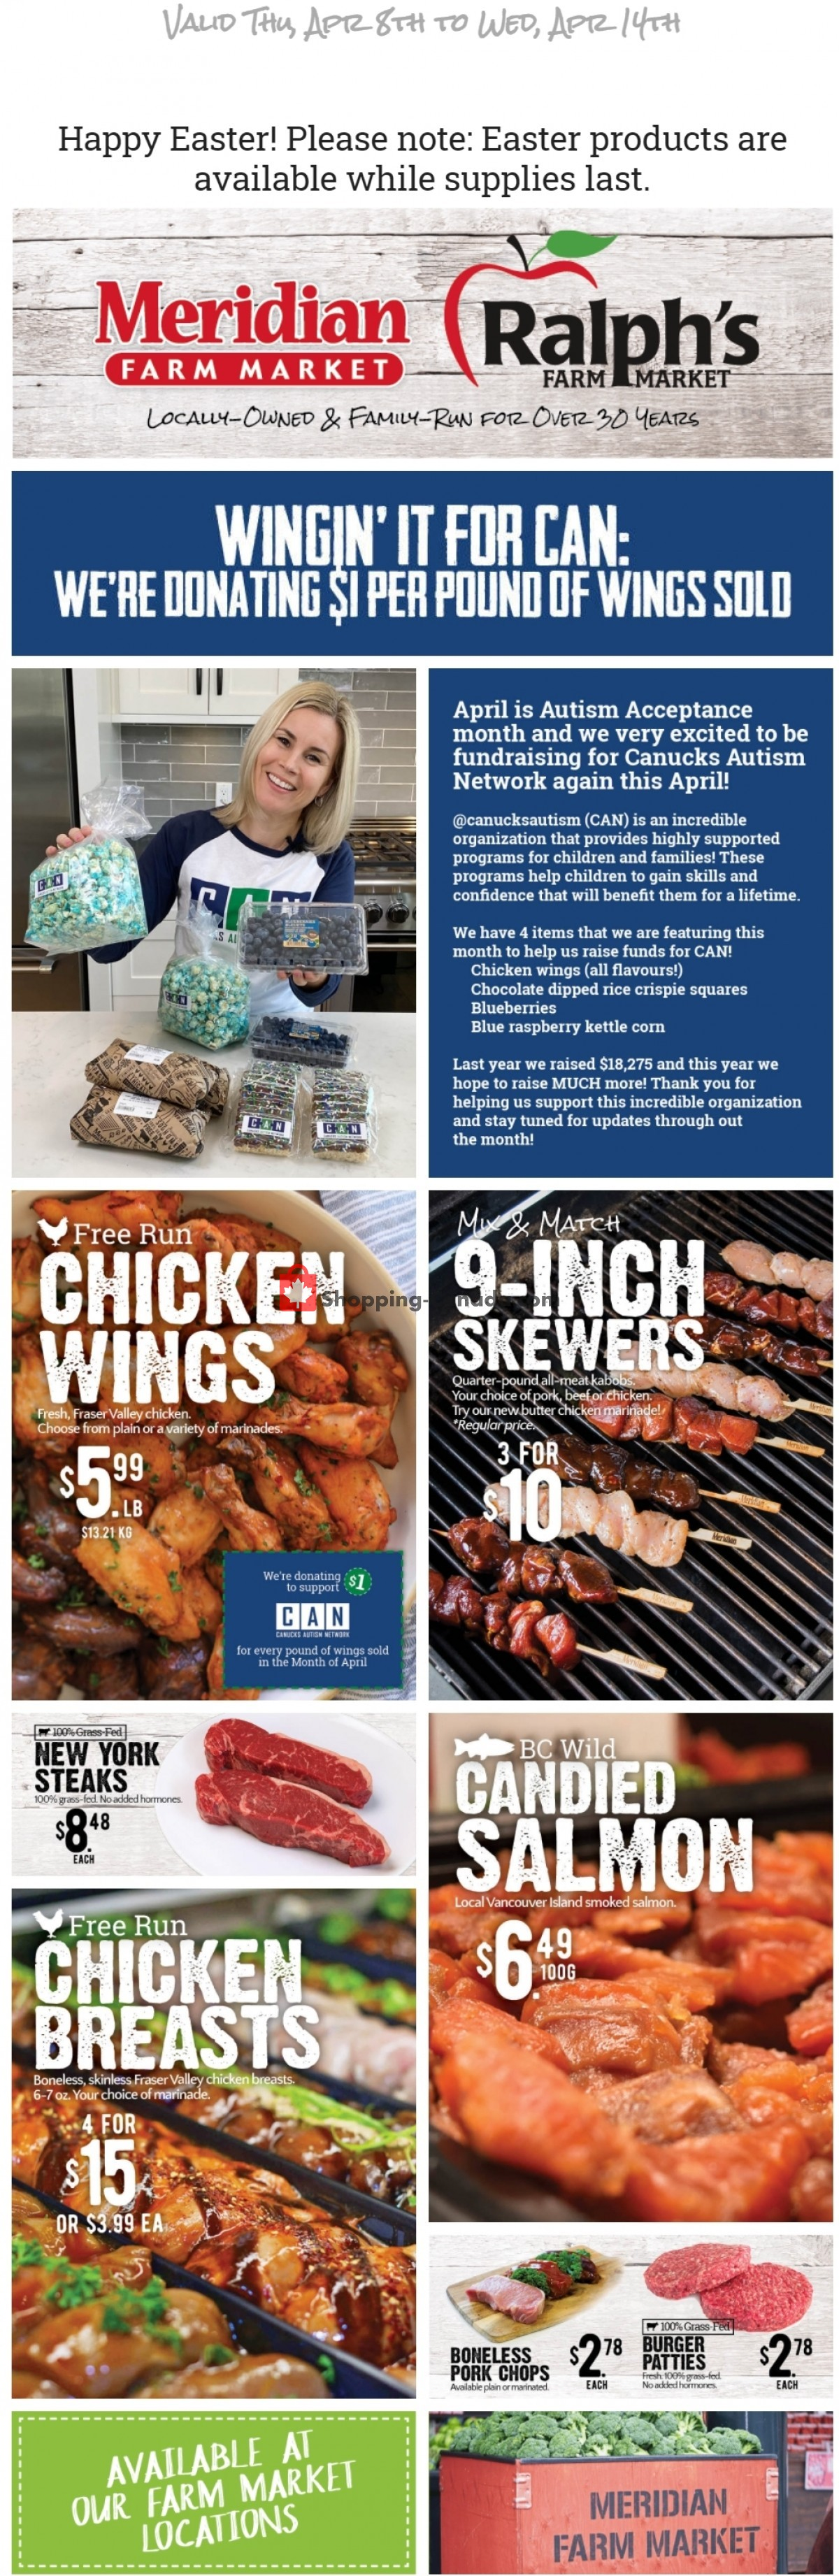 Flyer Meridian Meats & Meridian Farm Market Canada - from Thursday April 8, 2021 to Wednesday April 14, 2021